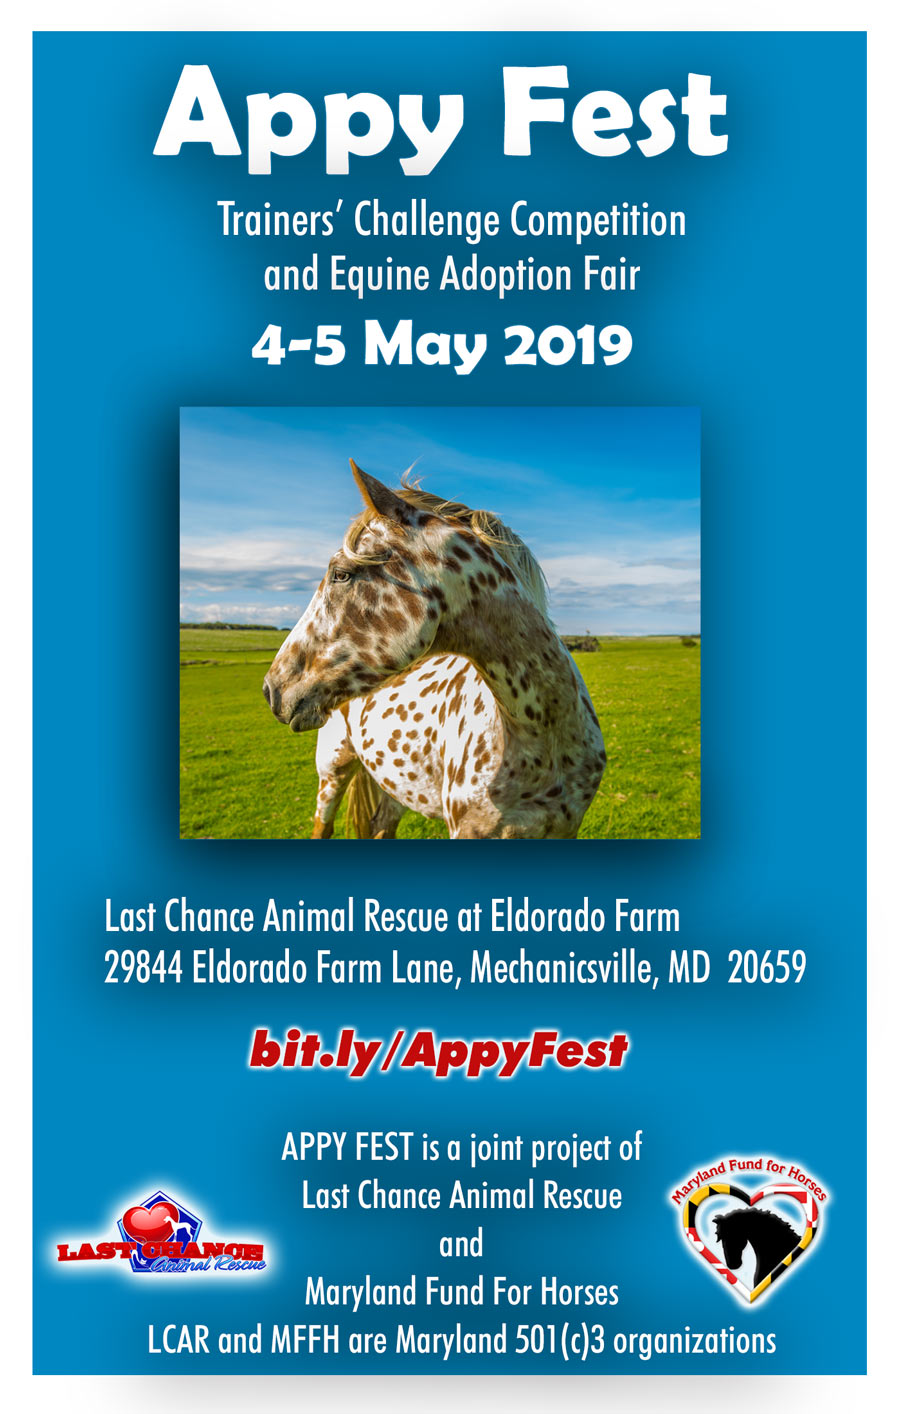 Appy Fest 2019 - Maryland Fund For Horses and Last Chance Animal Rescue